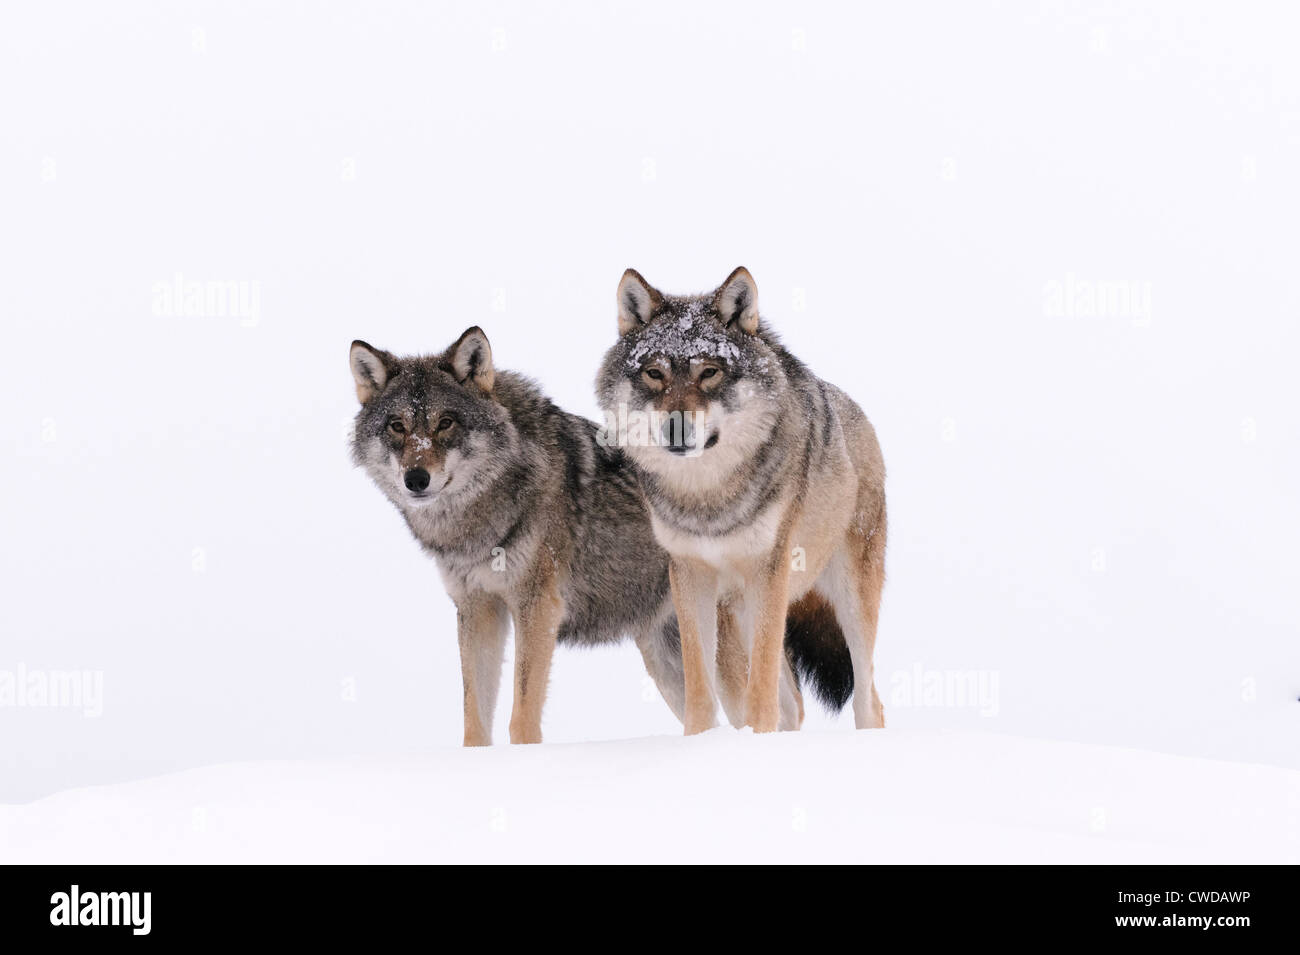 Two wolves on a snow hill in Polar Zoo, Bardu, Norway - Stock Image